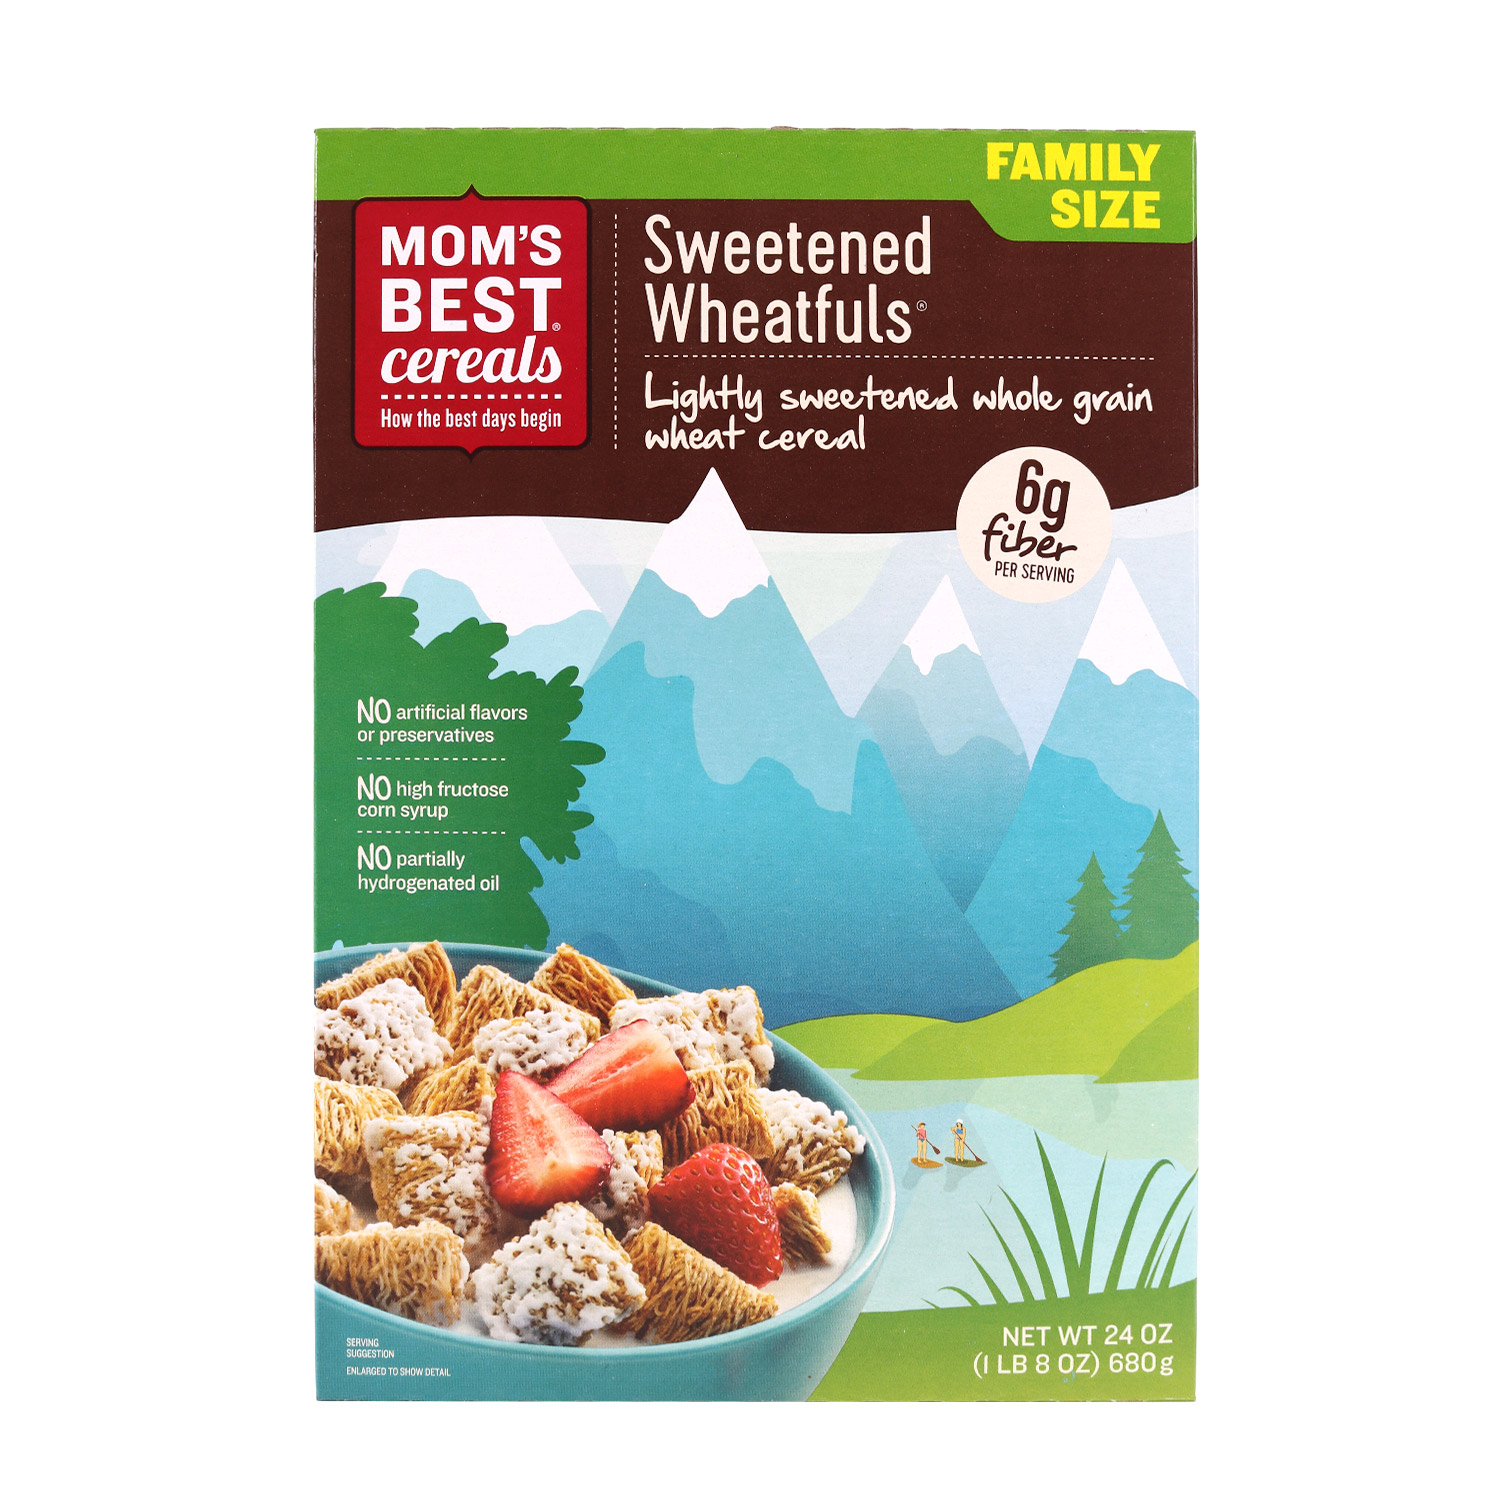 Cereal, Sweetened Wheat-Fuls